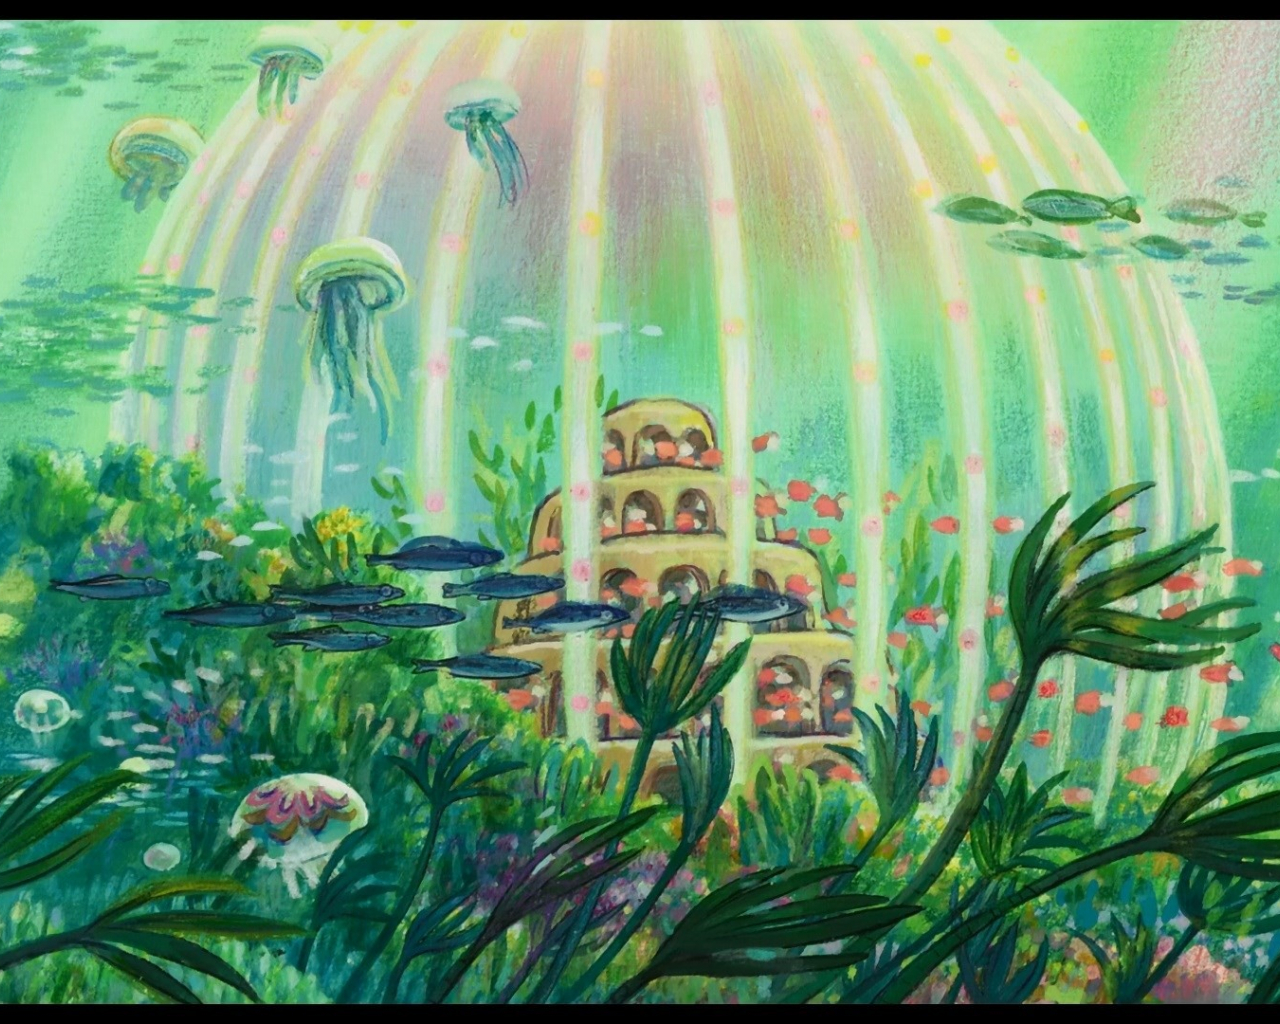 Free Download Ponyo Wallpaper 75 Images 1920x1080 For Your Desktop Mobile Tablet Explore 51 Ponyo Background Ponyo Background Ponyo Wallpaper Ponyo Wallpapers